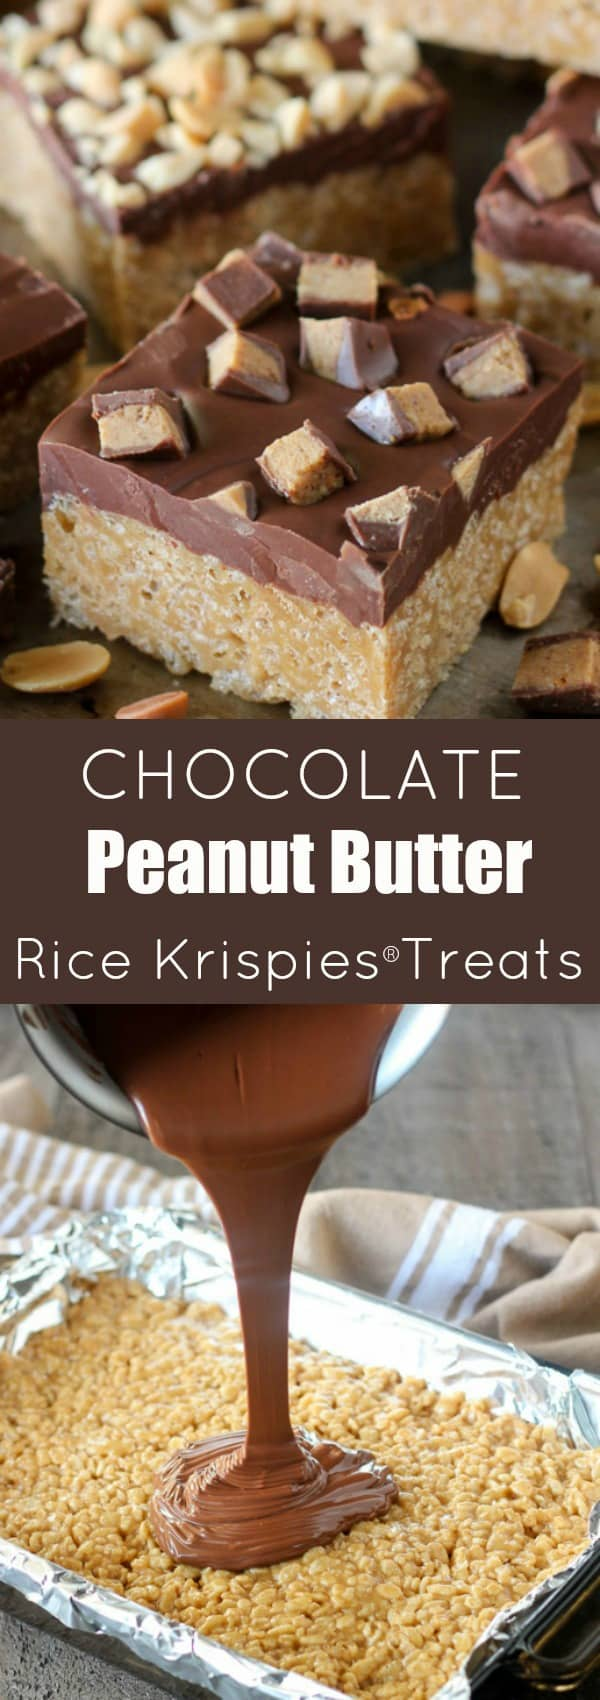 Chocolate Peanut Butter Rice Krispies® Treats - Chewy peanut butter Rice Krispies® bars covered with a chocolate-butterscotch topping and finished with chopped peanuts or peanut butter cups. An easy no-bake recipe that is loved by adults and kids alike!